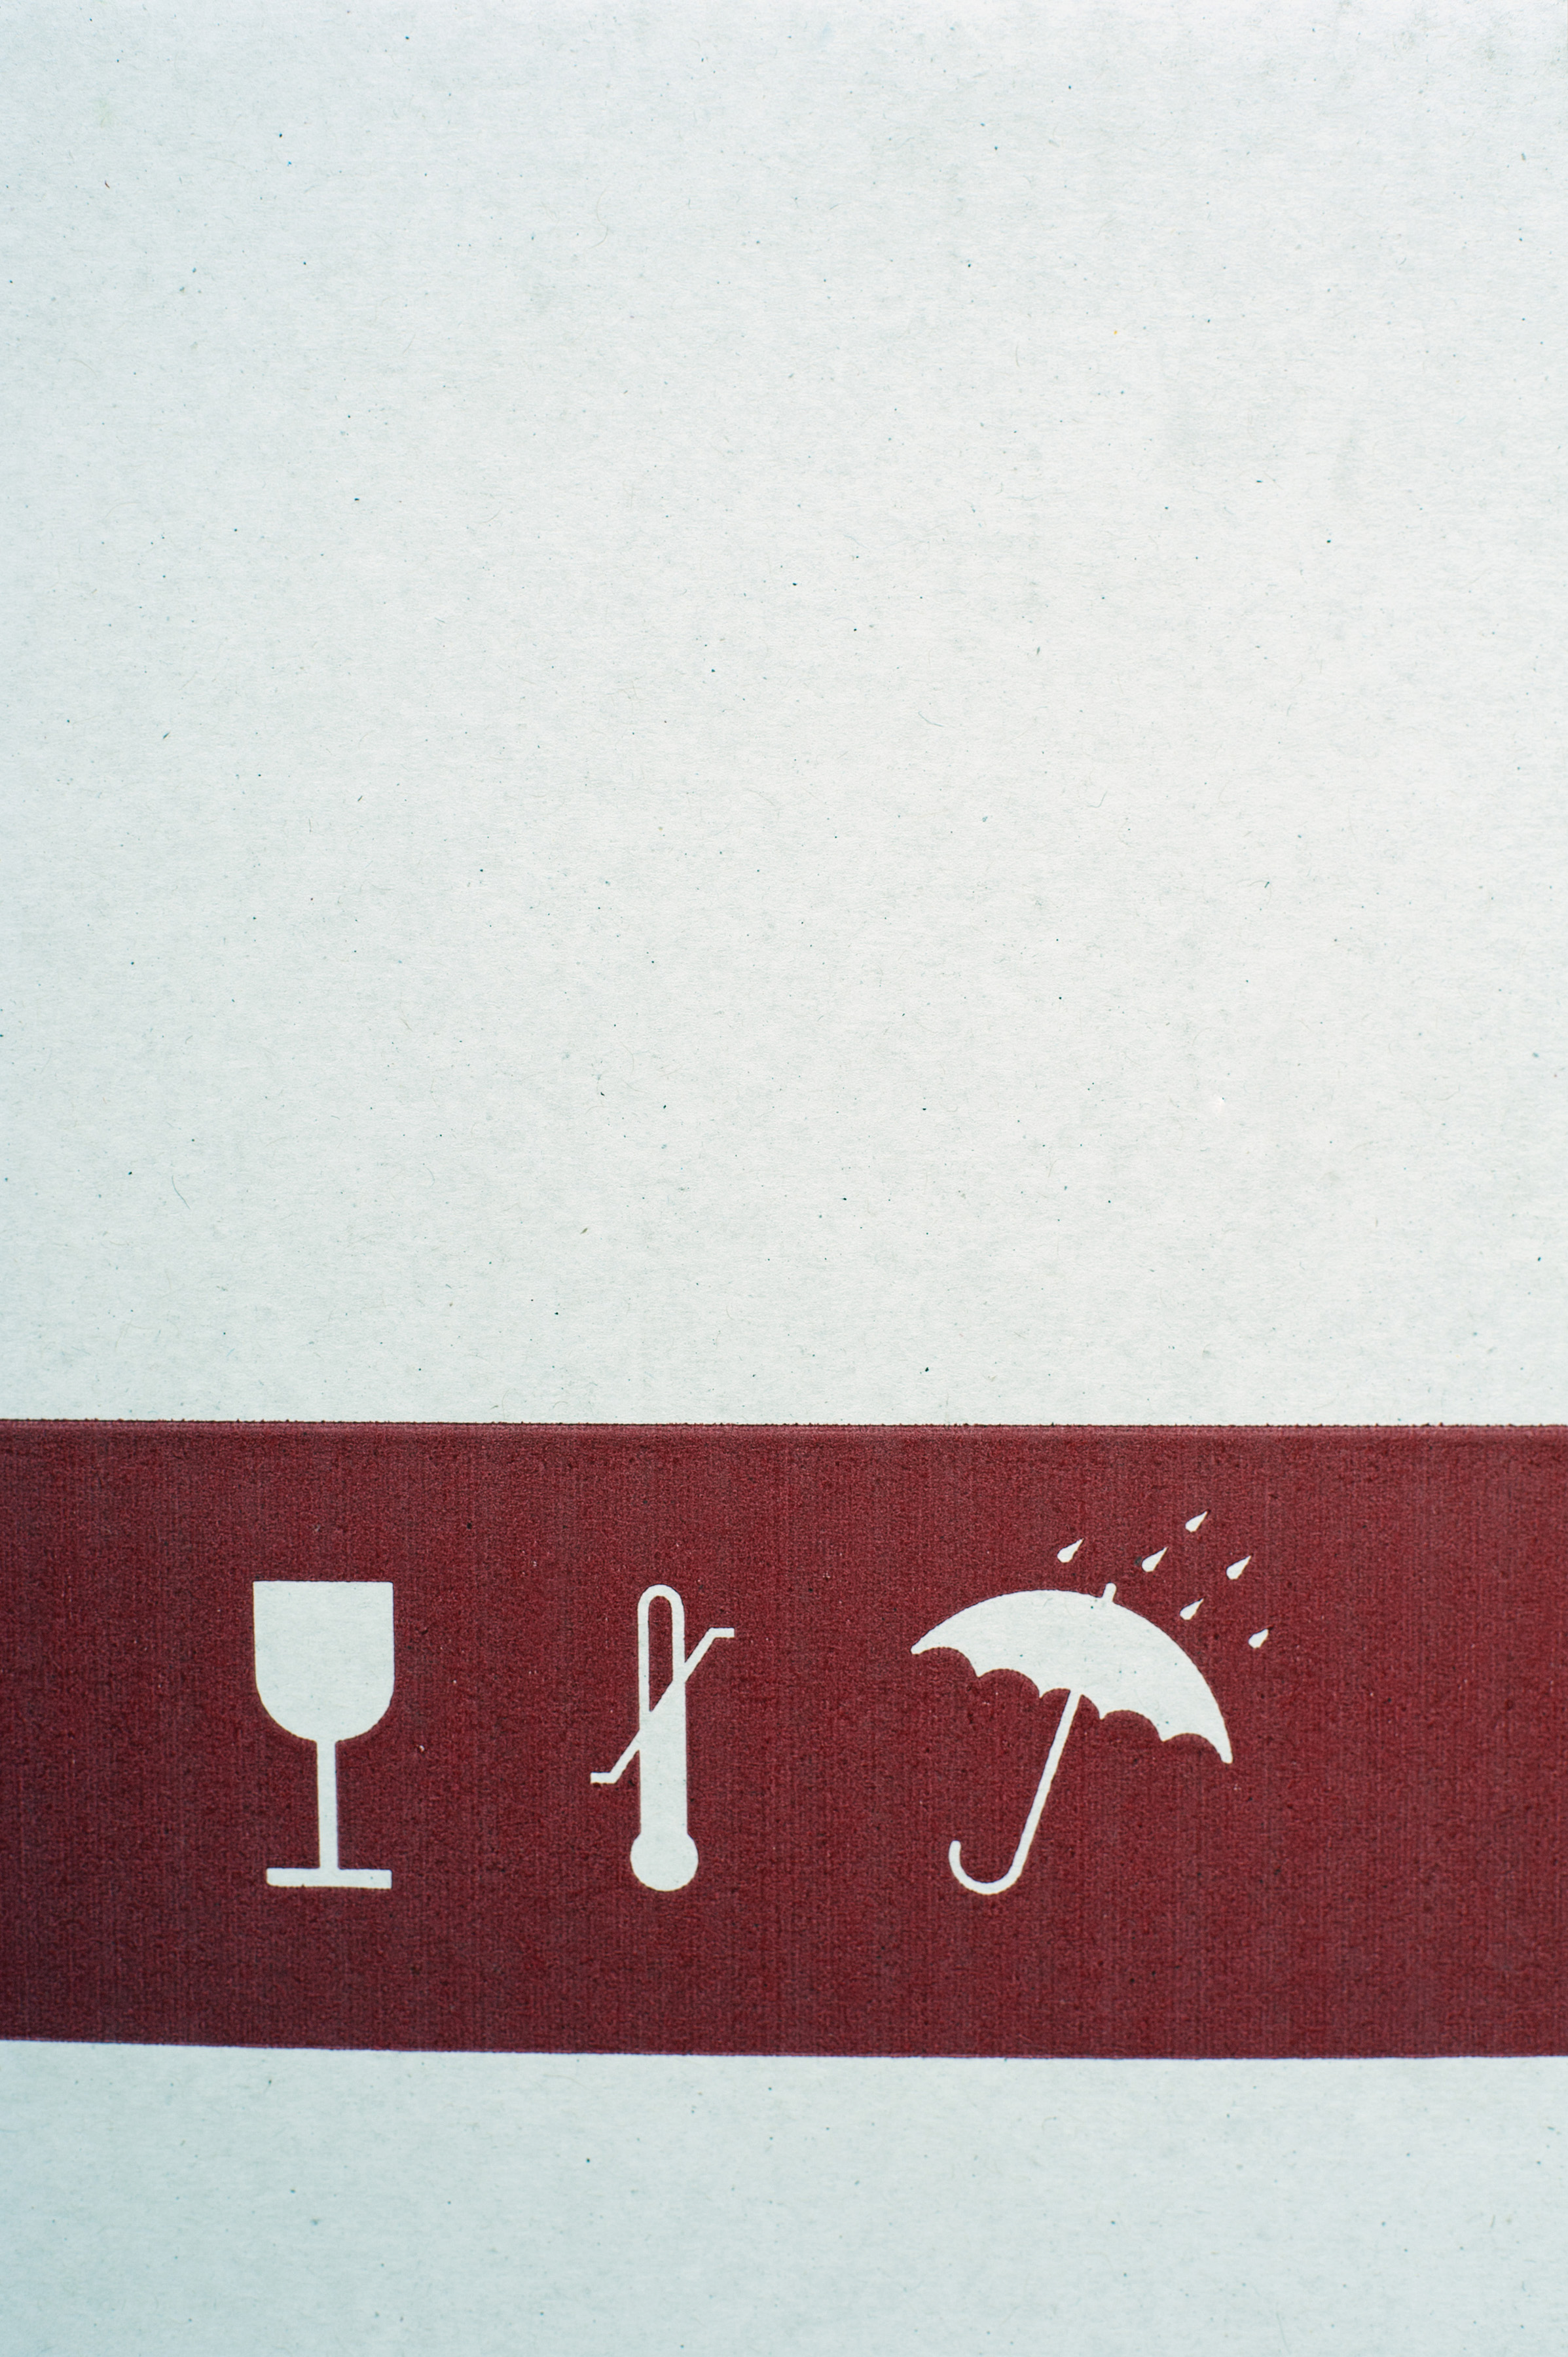 Symbols on the side of a cardboard box with a glass, thermometer and umbrella showing that the contents are fragile and must be protected from rain